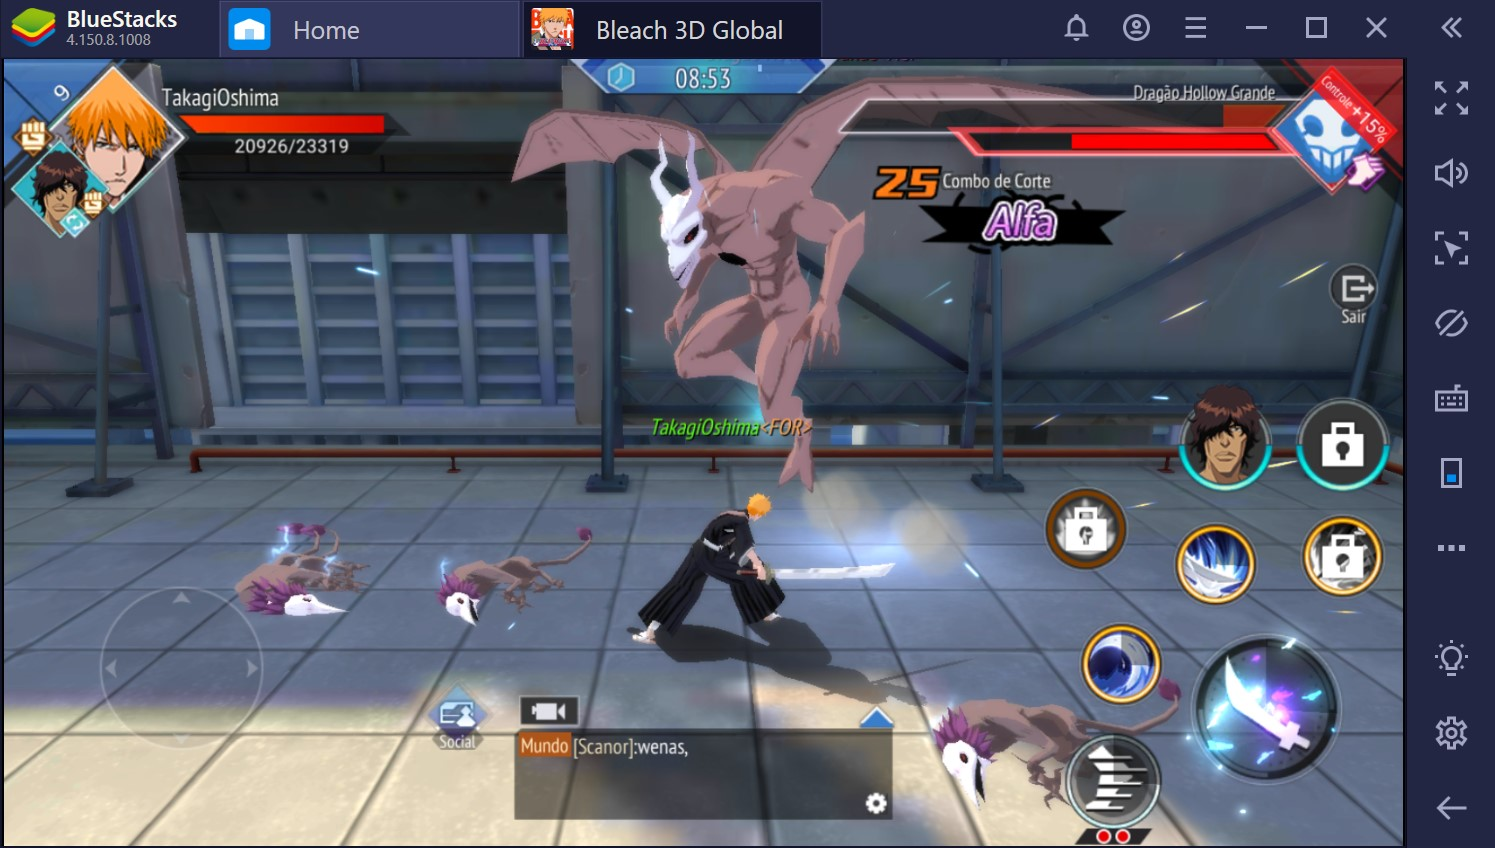 Como jogar Bleach Mobile 3D no PC com o BlueStacks